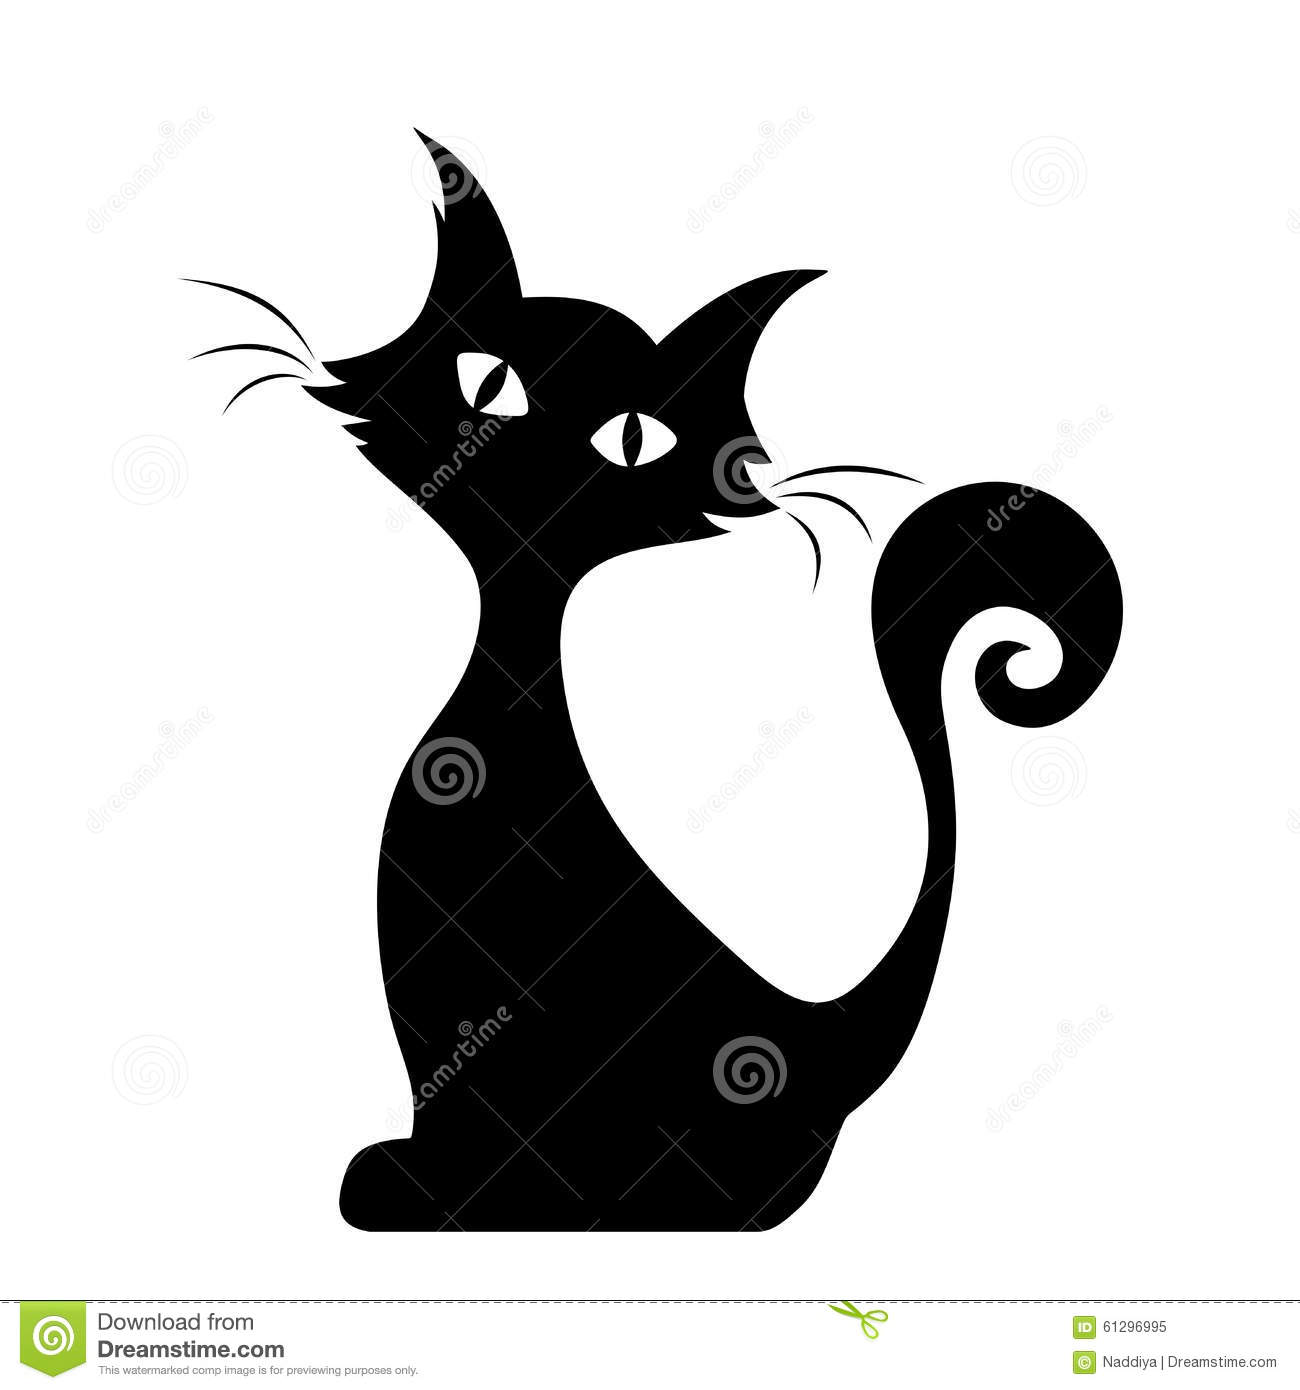 Chat se reposant silhouette noire de vecteur illustration - Dessin silhouette chat ...